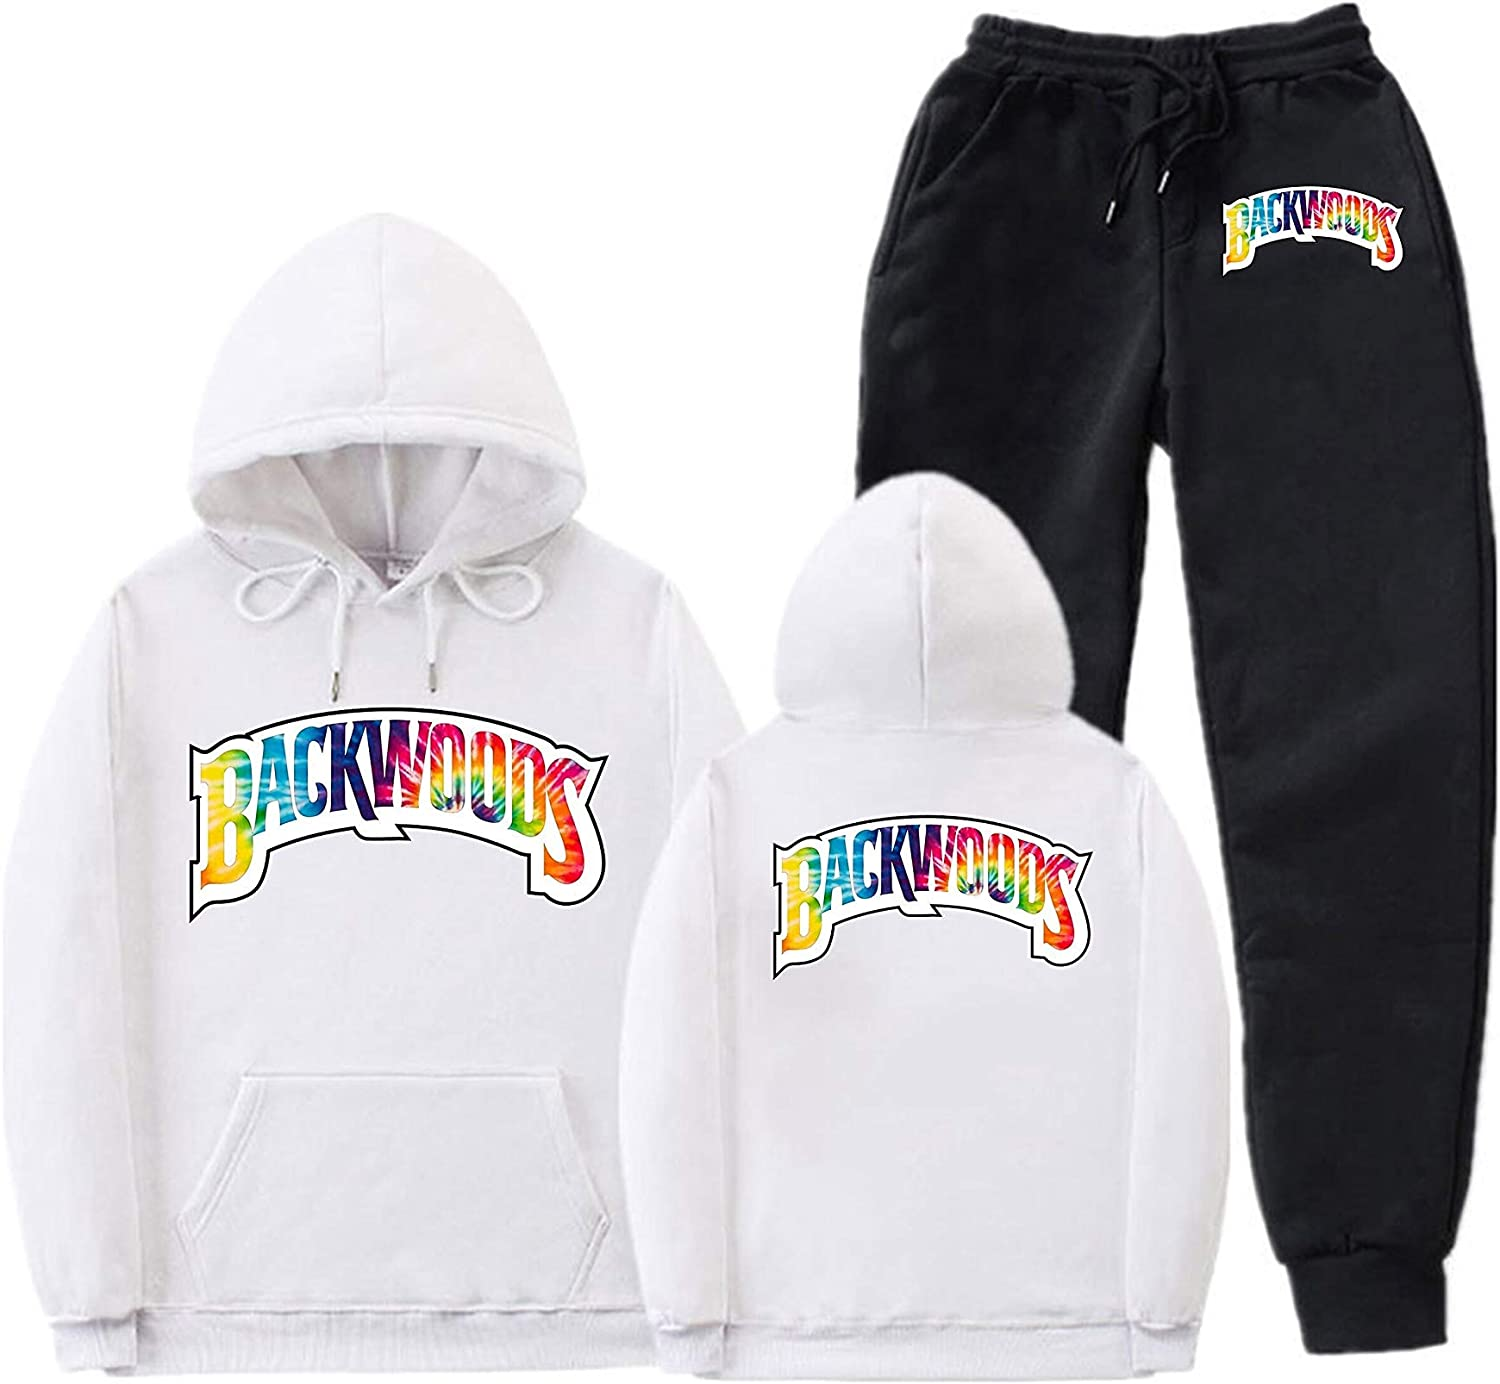 778 Backwoods Hoodies and Fashion Sweatpants Suit Hip Hop Sweatshirts Tracksuit Two Piece for Men Women